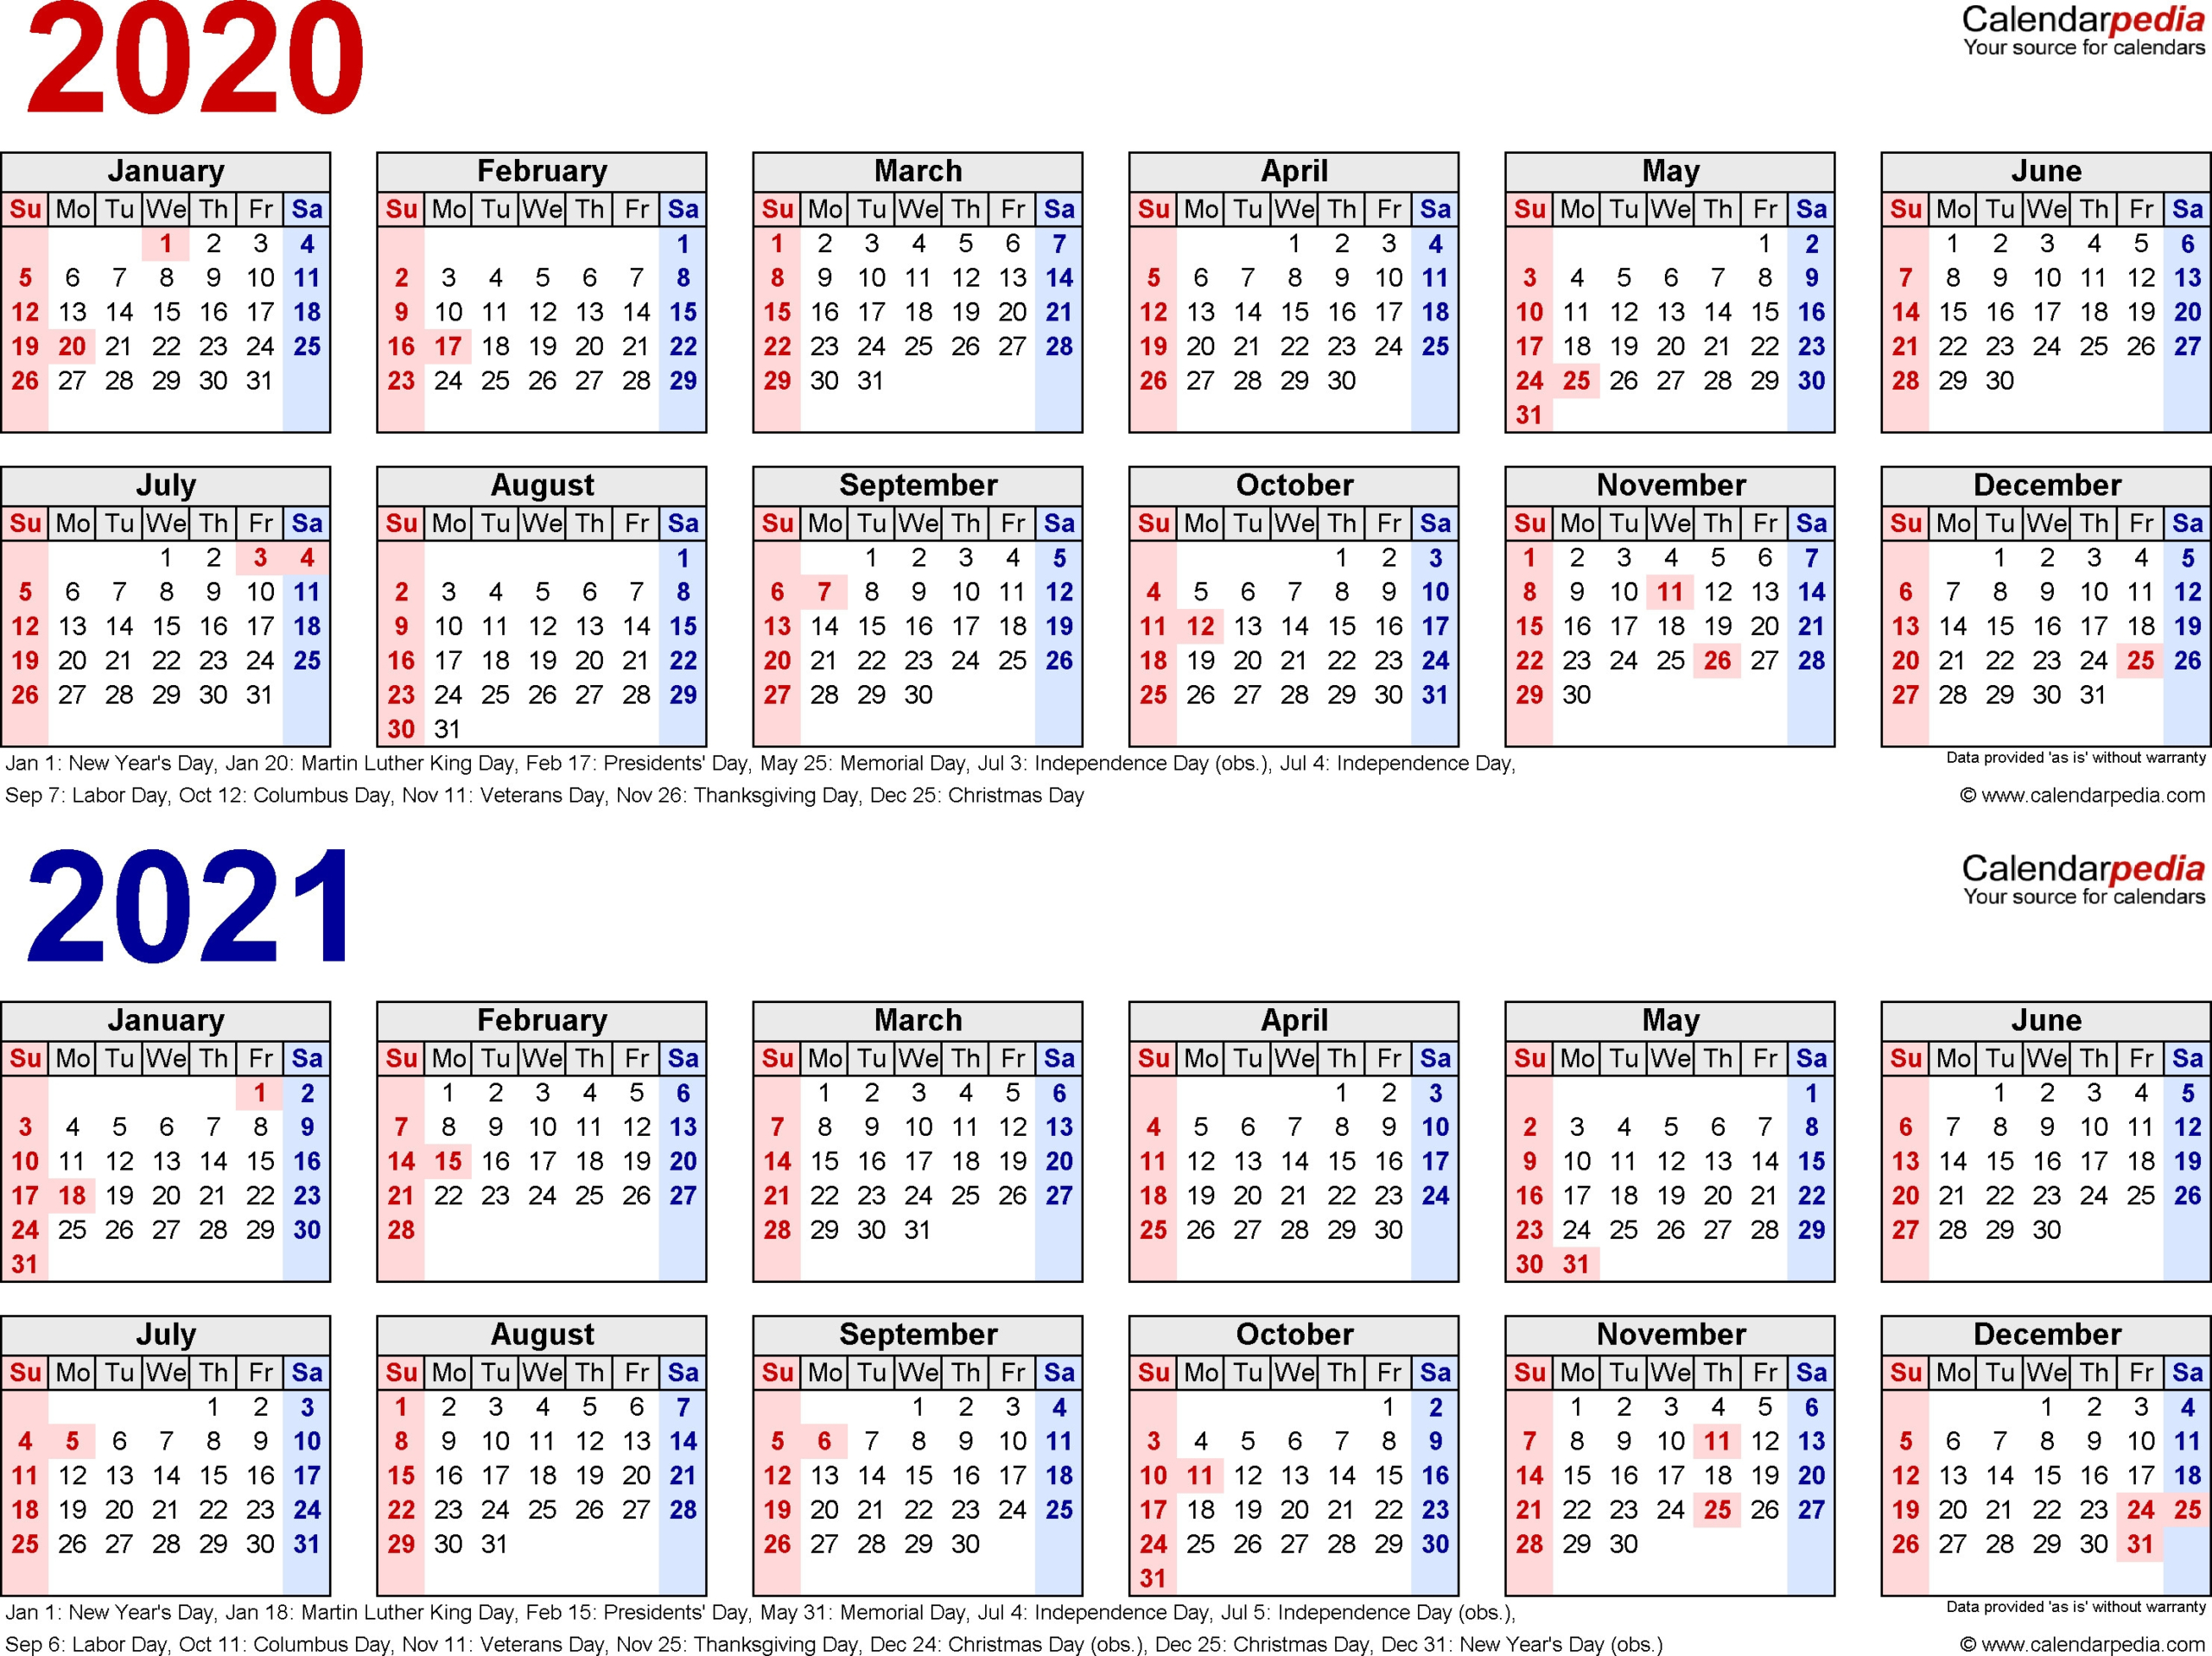 Depo Schedule For 2021 | Calendar Printables Free Blank with Depo Calendar 2021 Printable